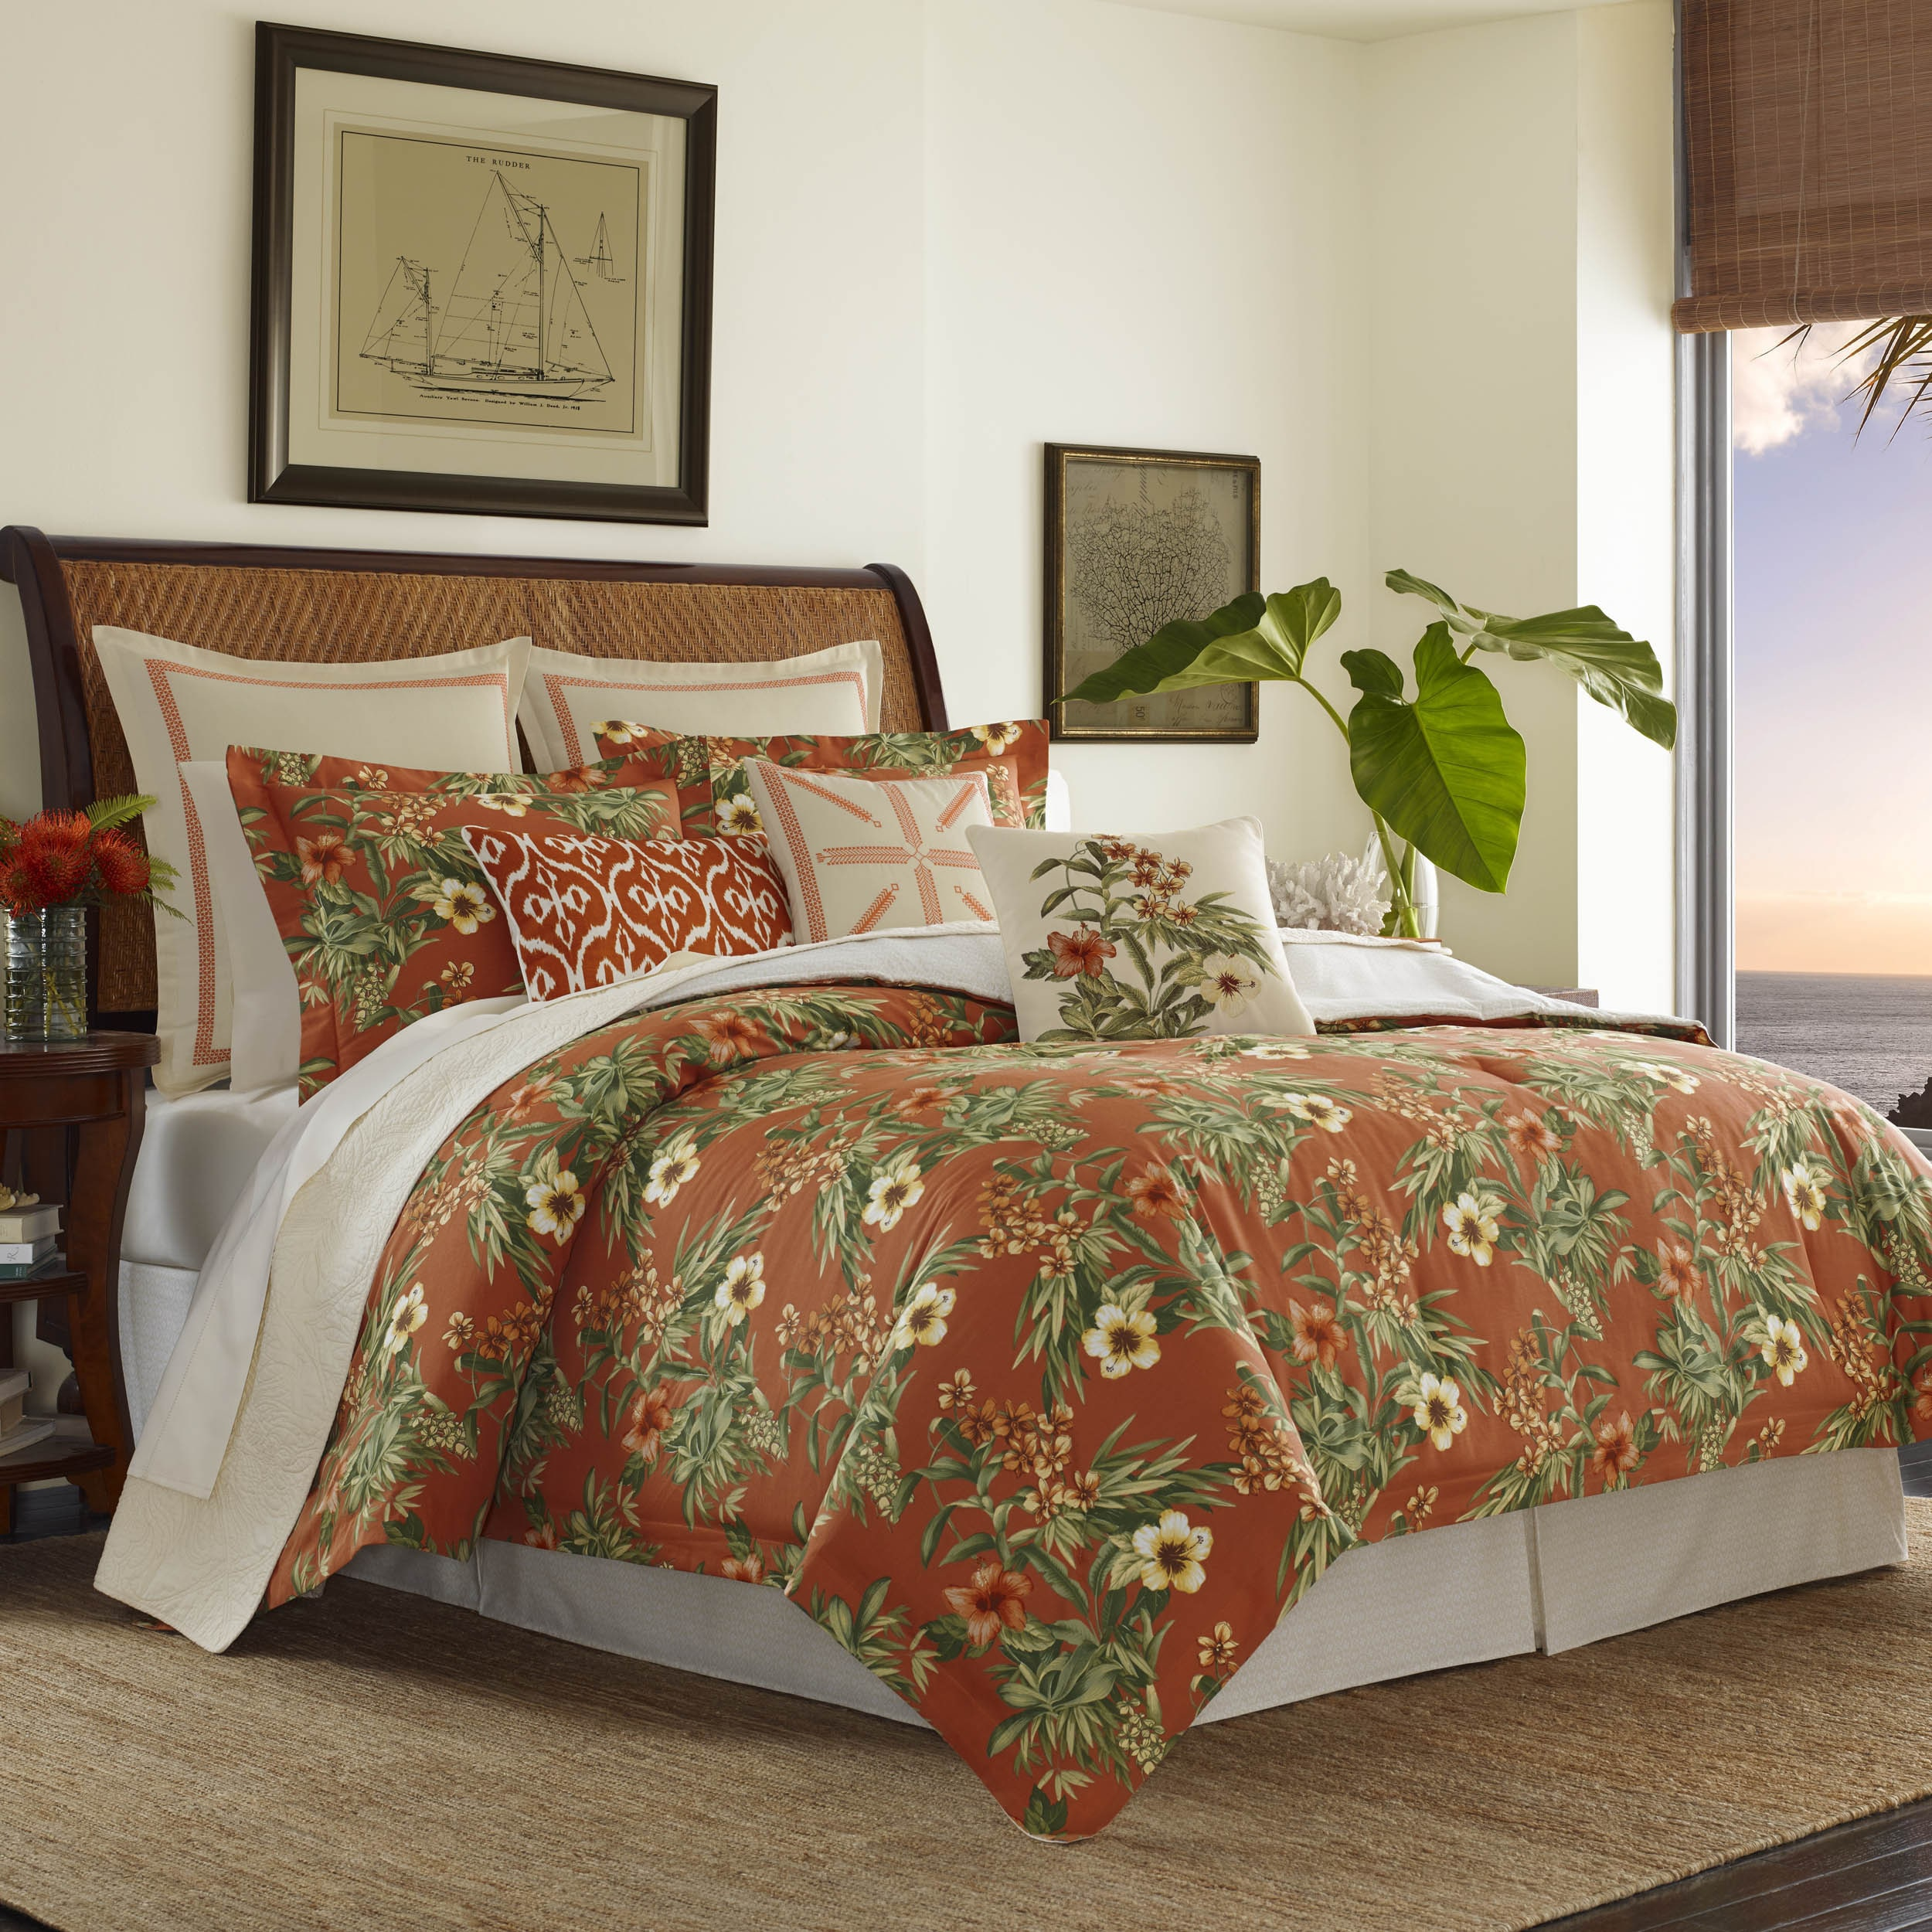 chocolate queen a green gold set bed bedding in tommy bahama duvet bag brown king sets blue and collections size black gray comforter